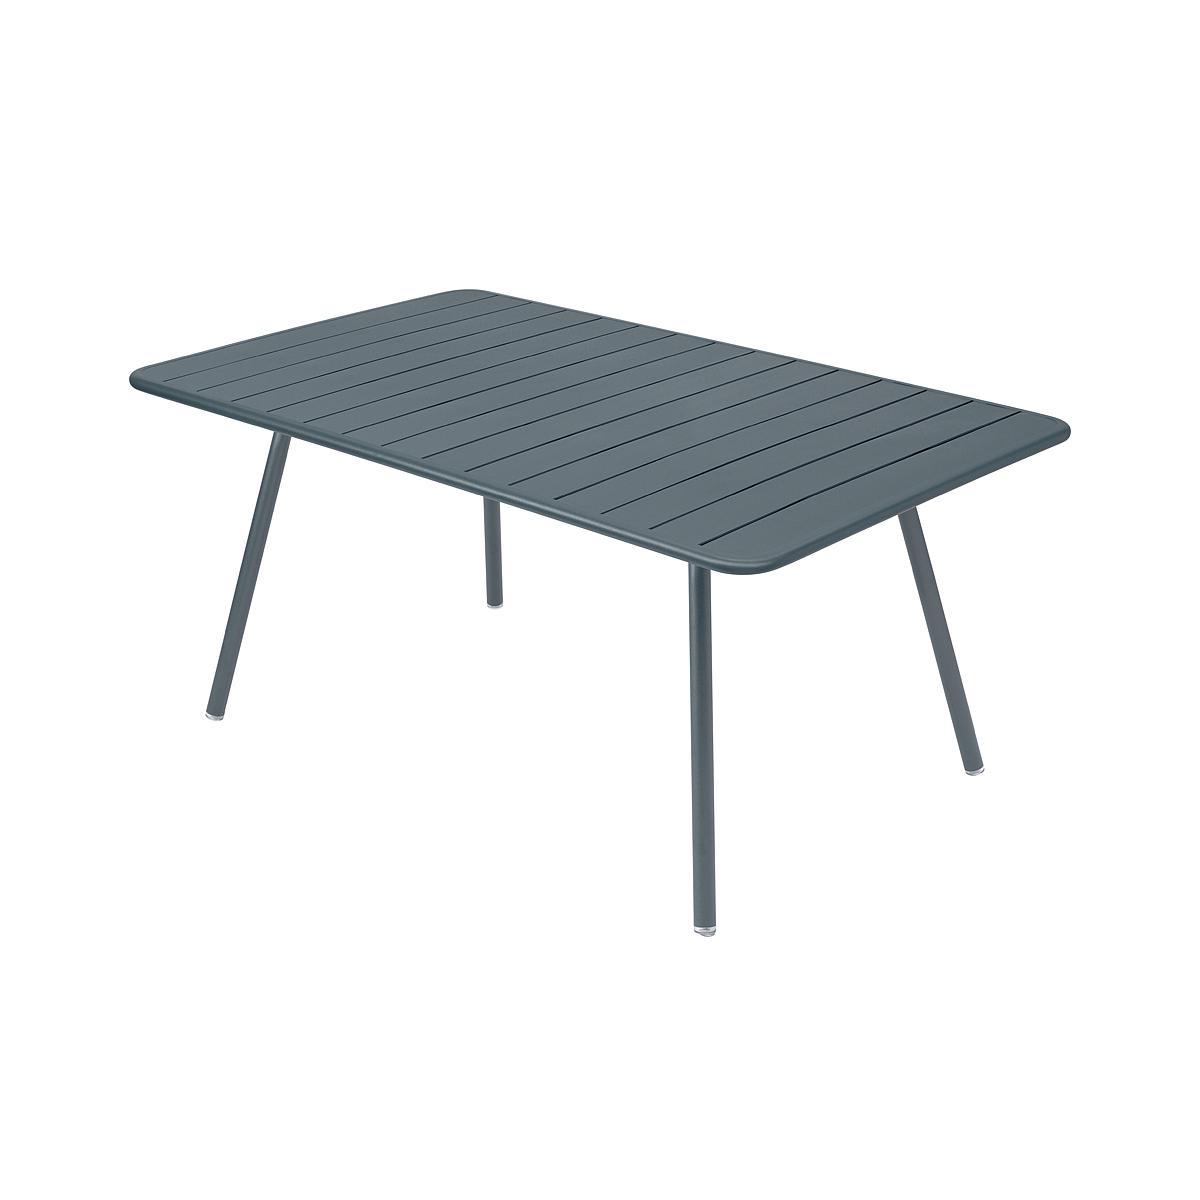 LUXEMBOURG by Fermob Table confort 6 gris orage